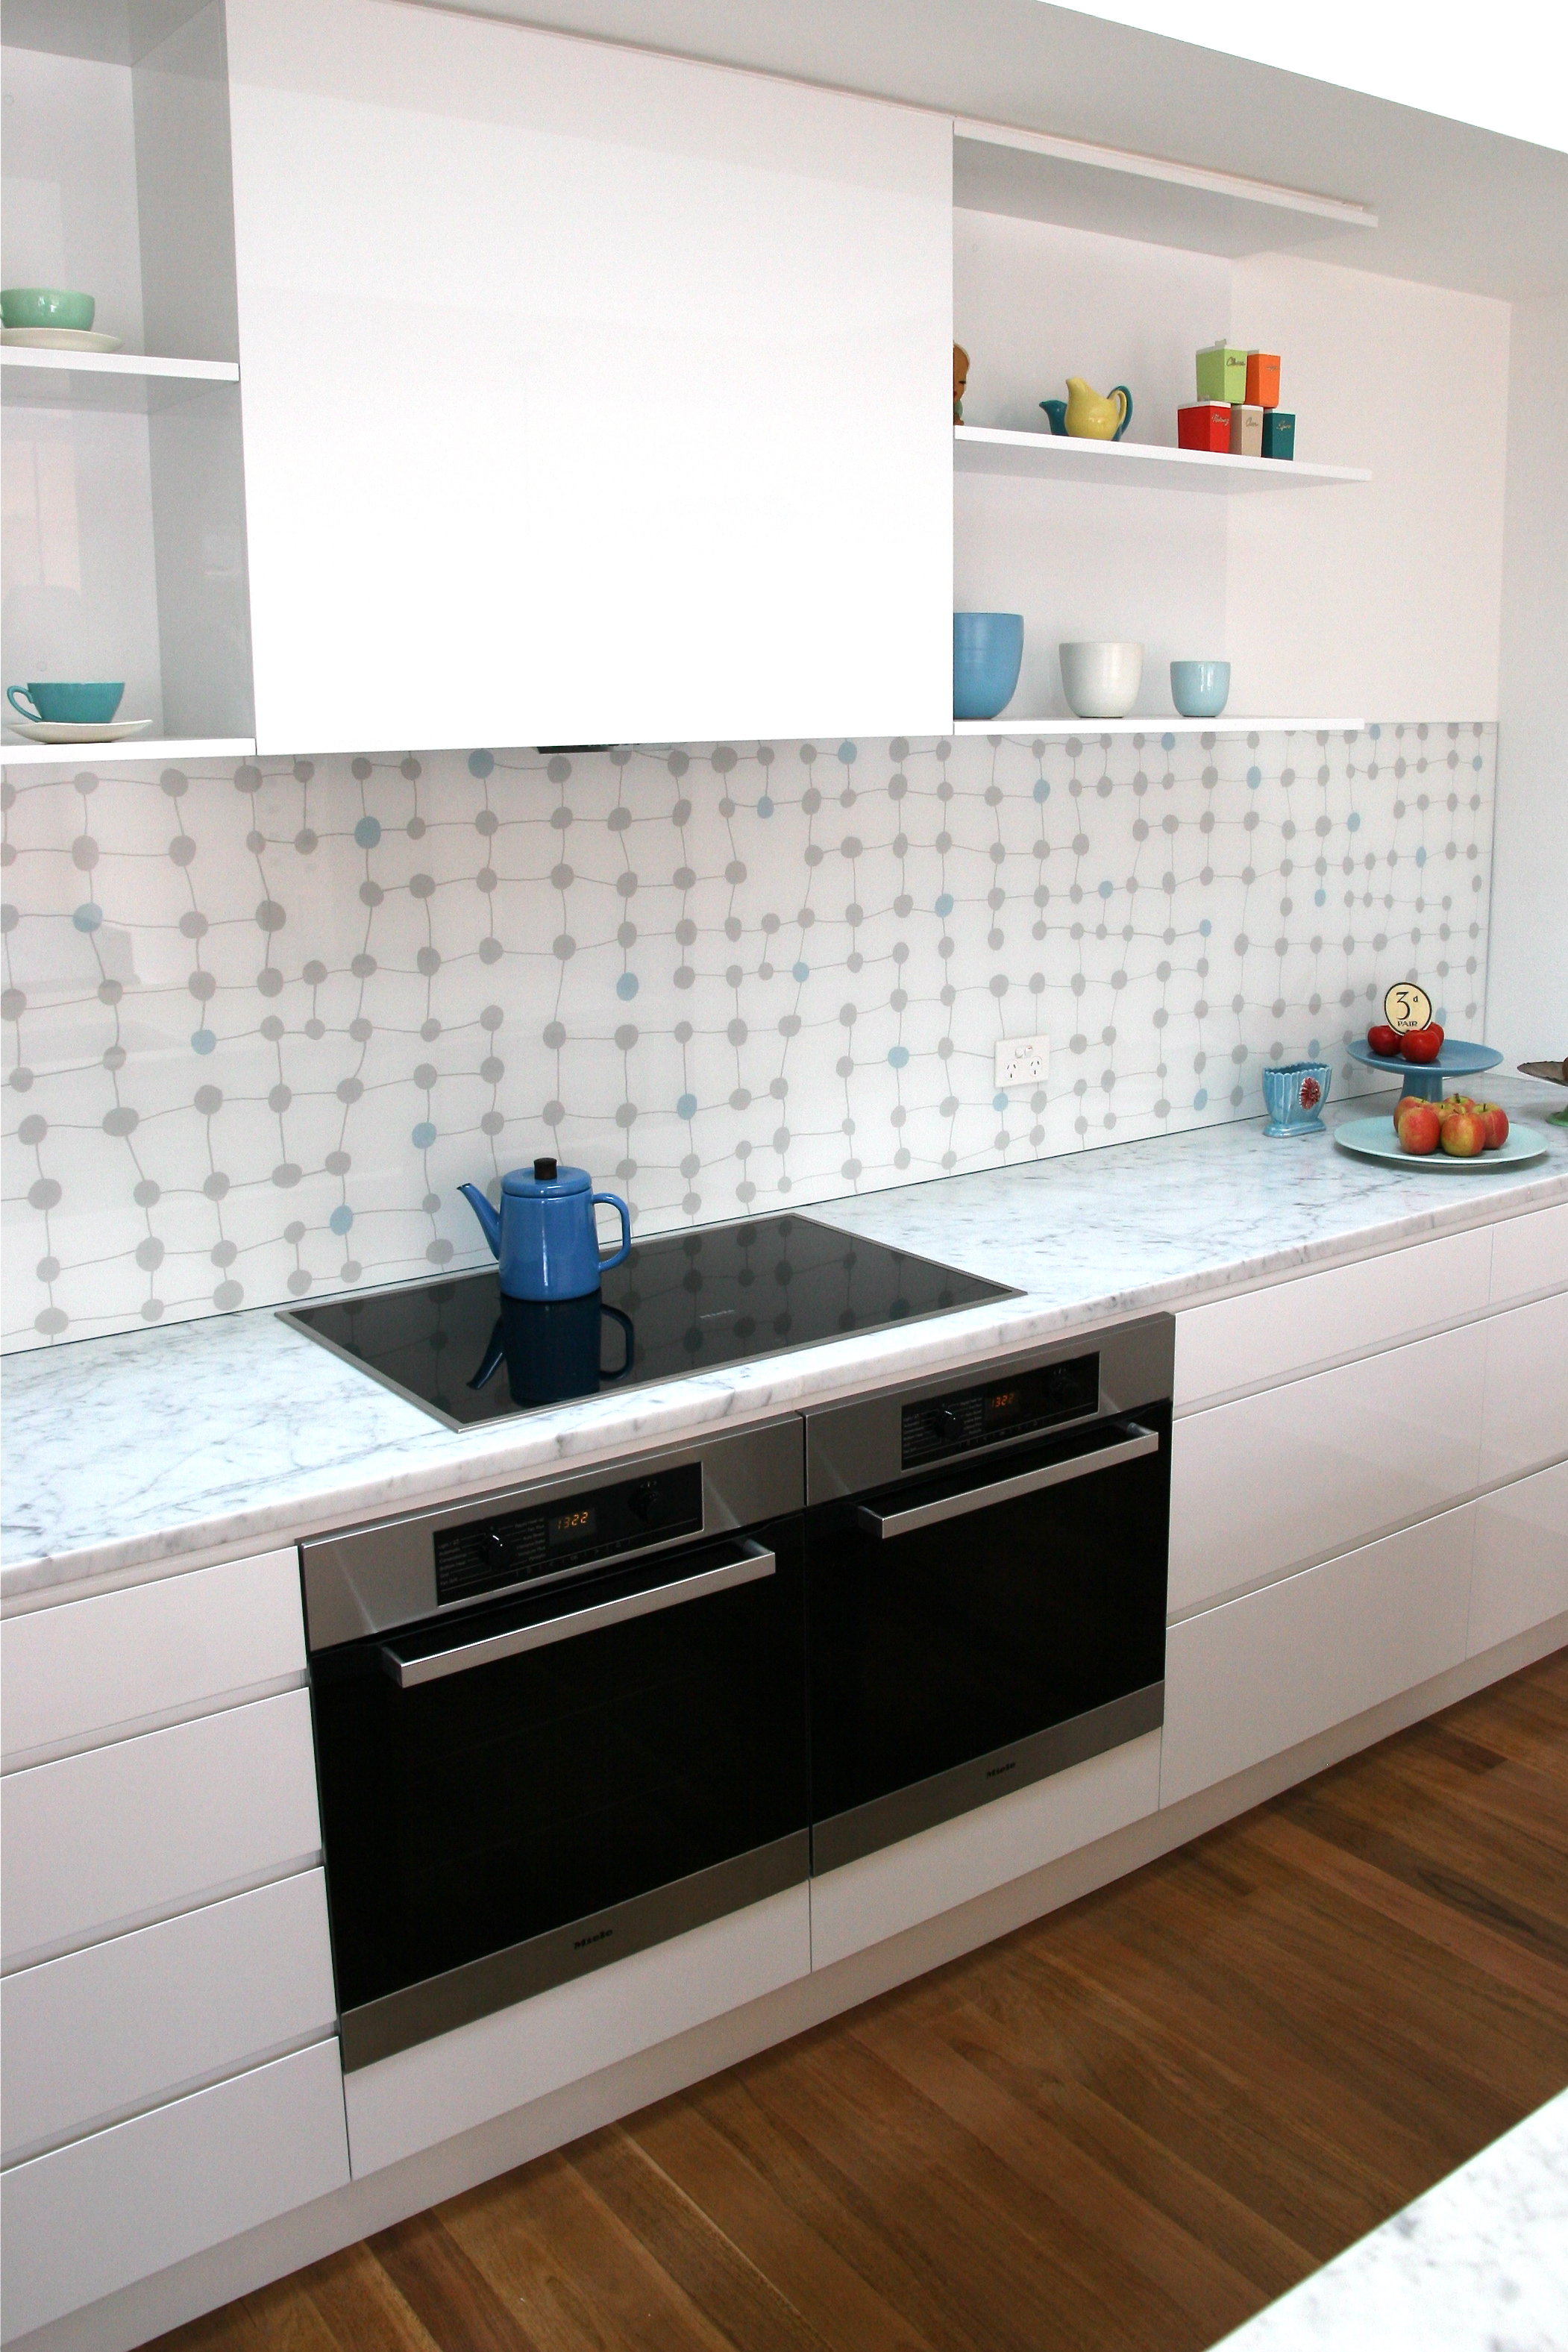 Hand painted splashback collaboratively designed with client